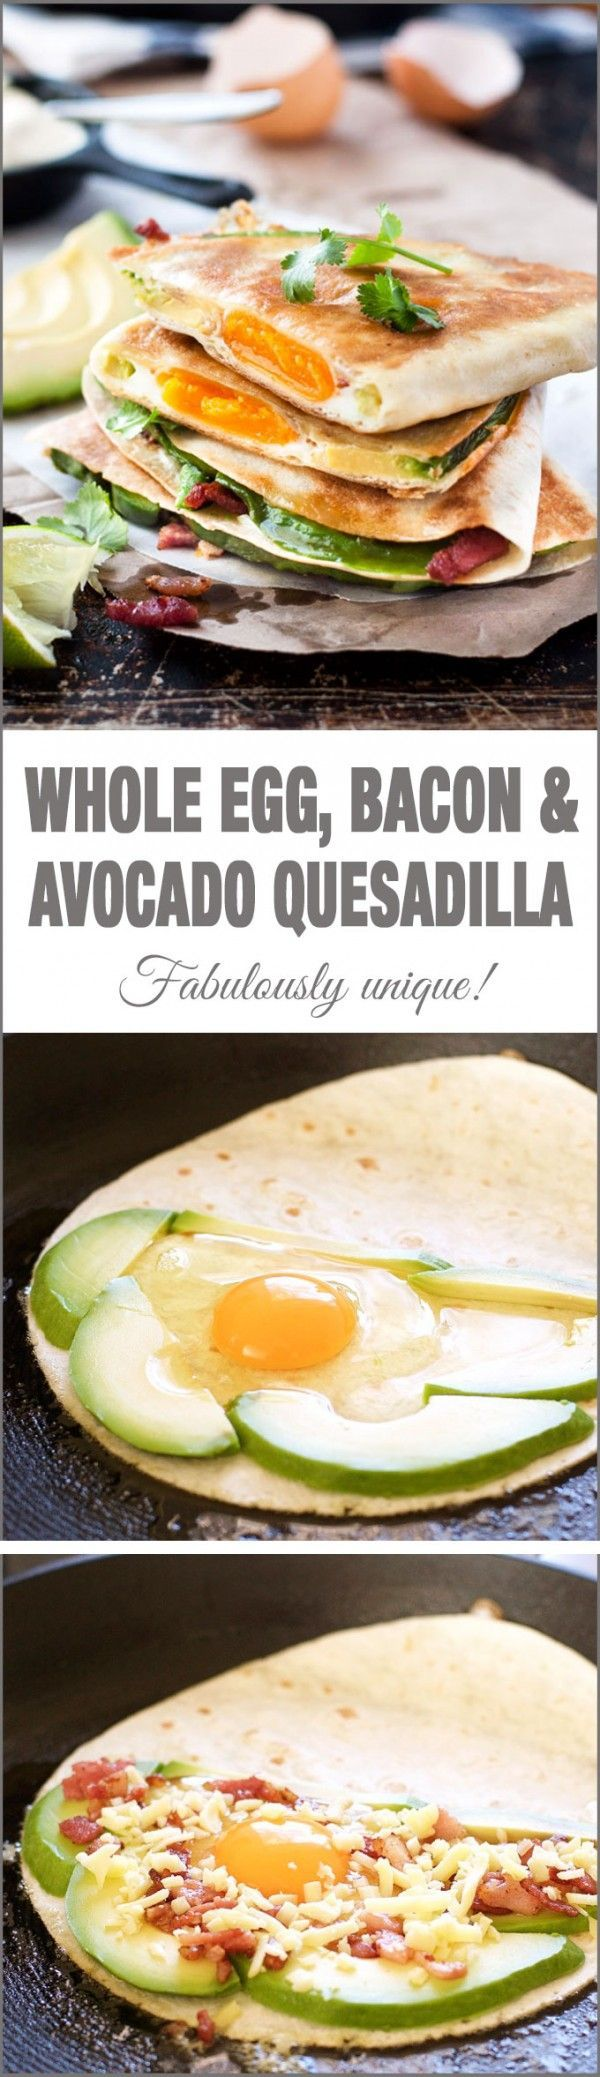 Get the recipe ♥ Whole Egg Bacon and Avocado Quesadilla @recipes_to_go